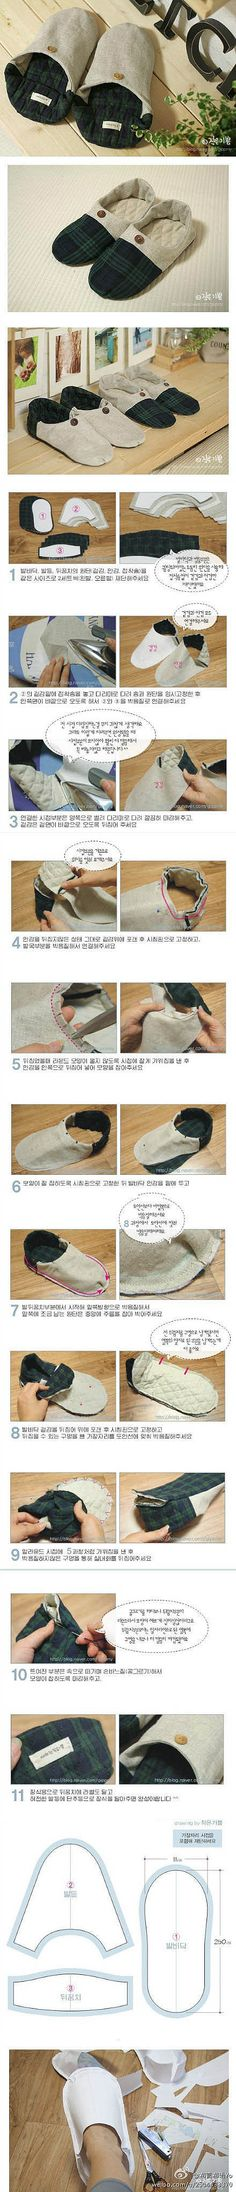 DIY Slippers (in Chinese, but with a fairly easy-to-understand photo tutorial) Sewing Hacks, Sewing Tutorials, Sewing Patterns, Fabric Crafts, Sewing Crafts, Sewing Projects, Diy Projects, Diy Clothing, Sewing Clothes